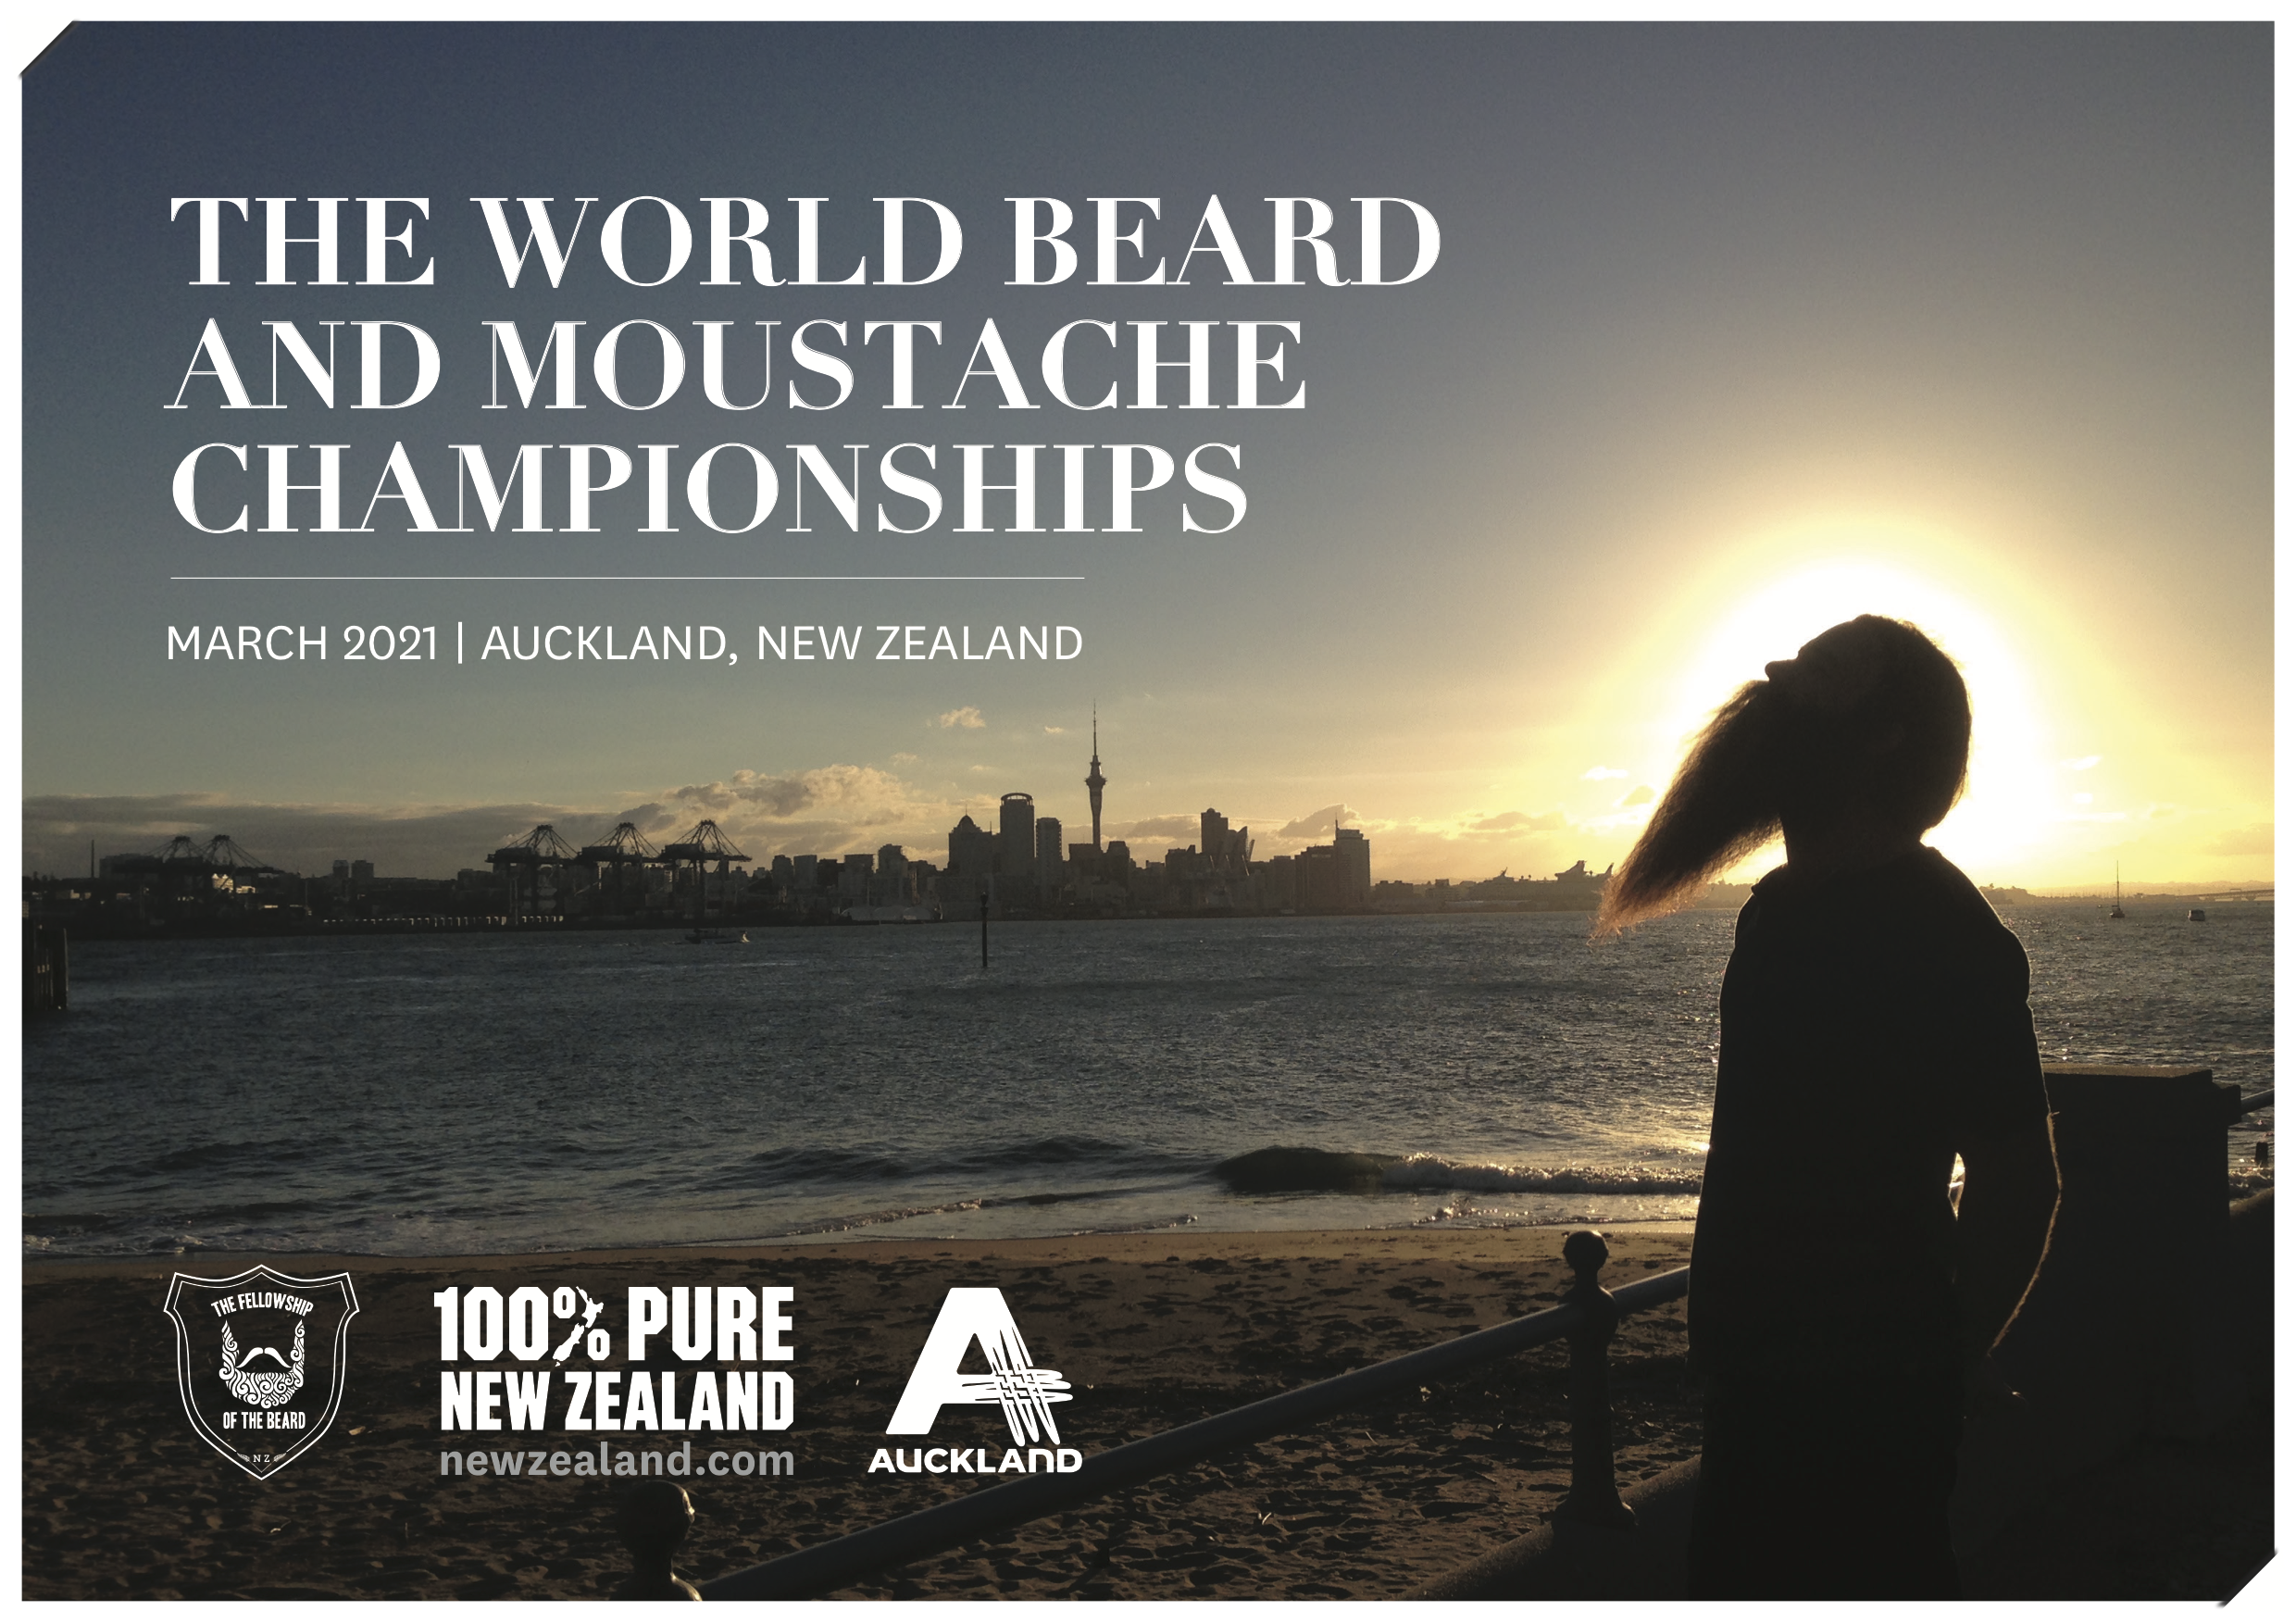 The next World Beard and Moustache Championship will be held in Auckland New Zealand in March of 2021.